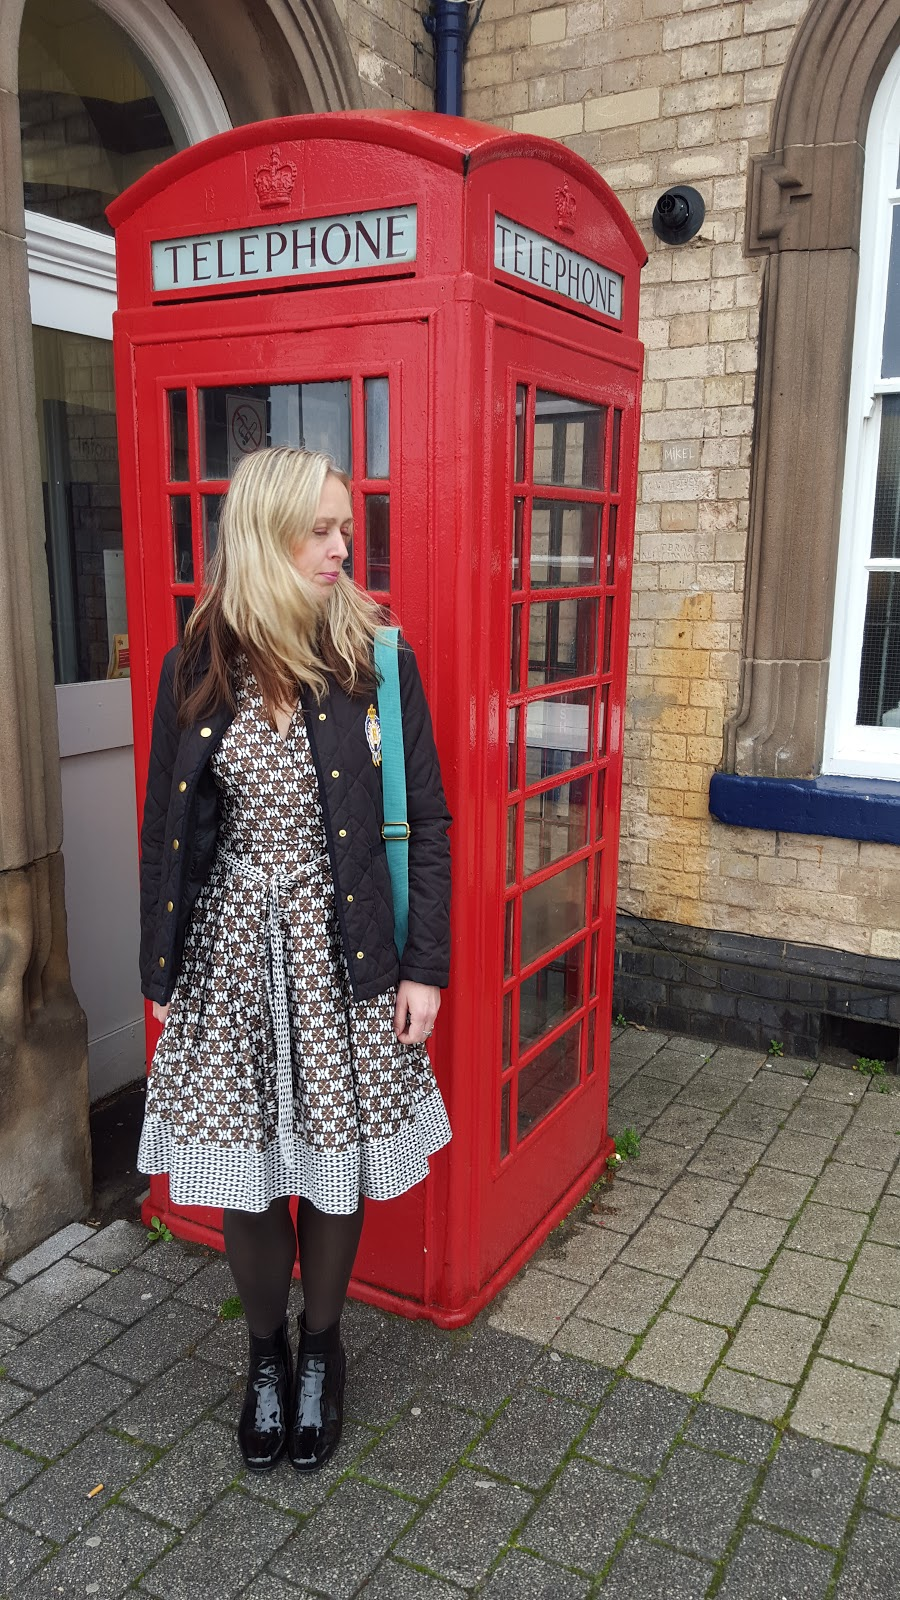 Winter Style, Patient Boots And Red Phone Box